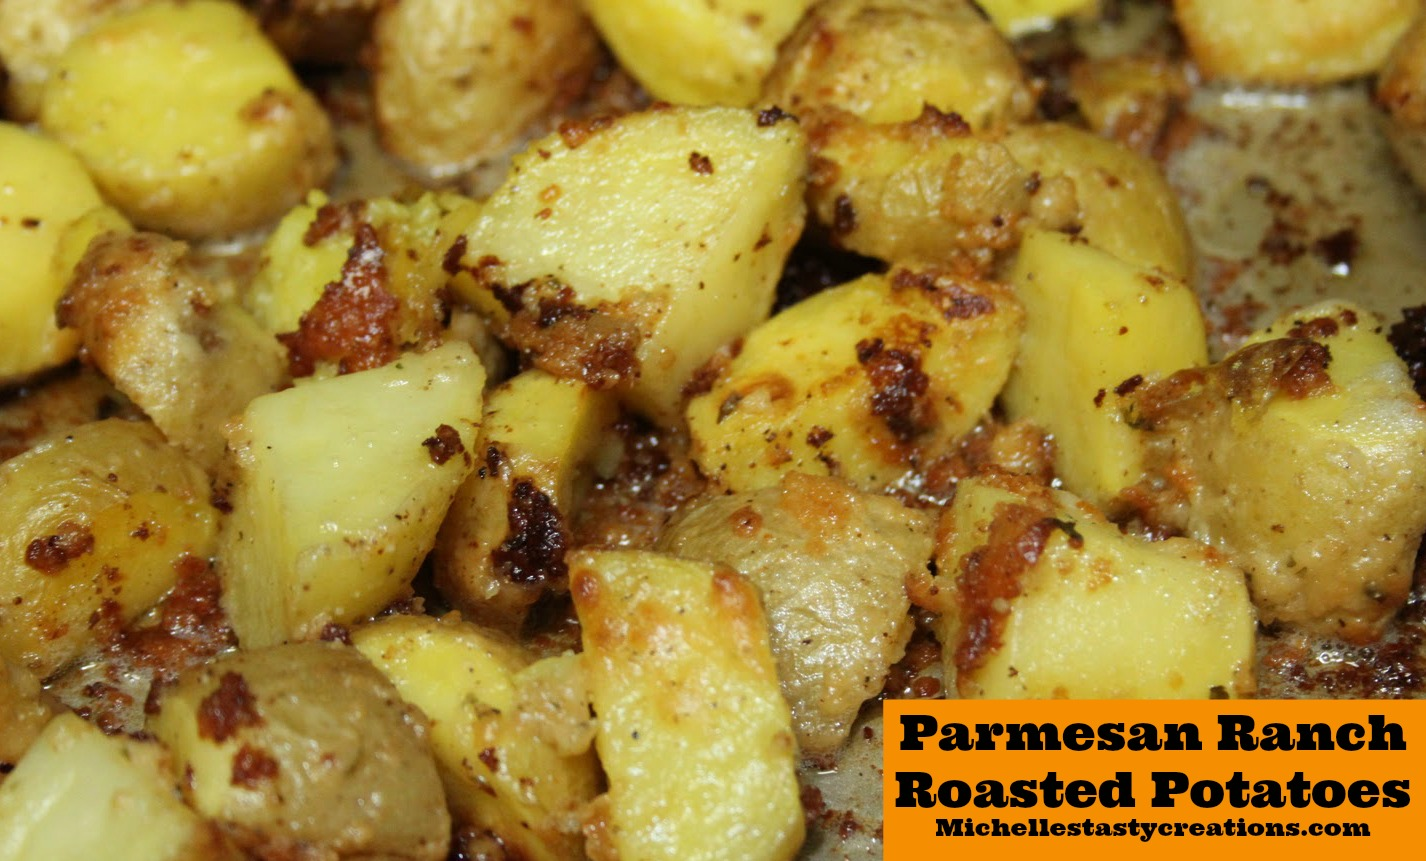 Michelle's Tasty Creations: Parmesan Ranch Roasted Potatoes